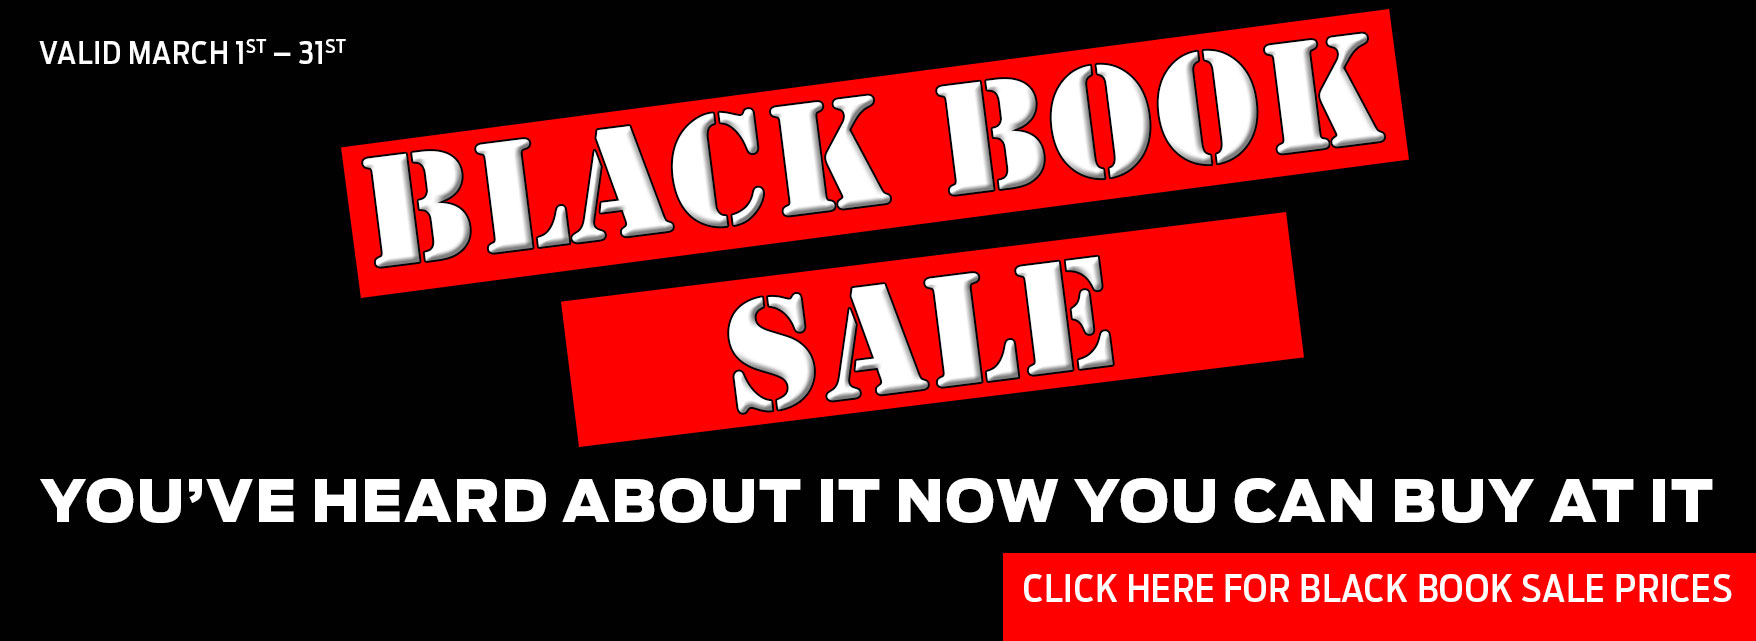 Black Book Sale from March 1st to March 31st at Terrace Totem Ford